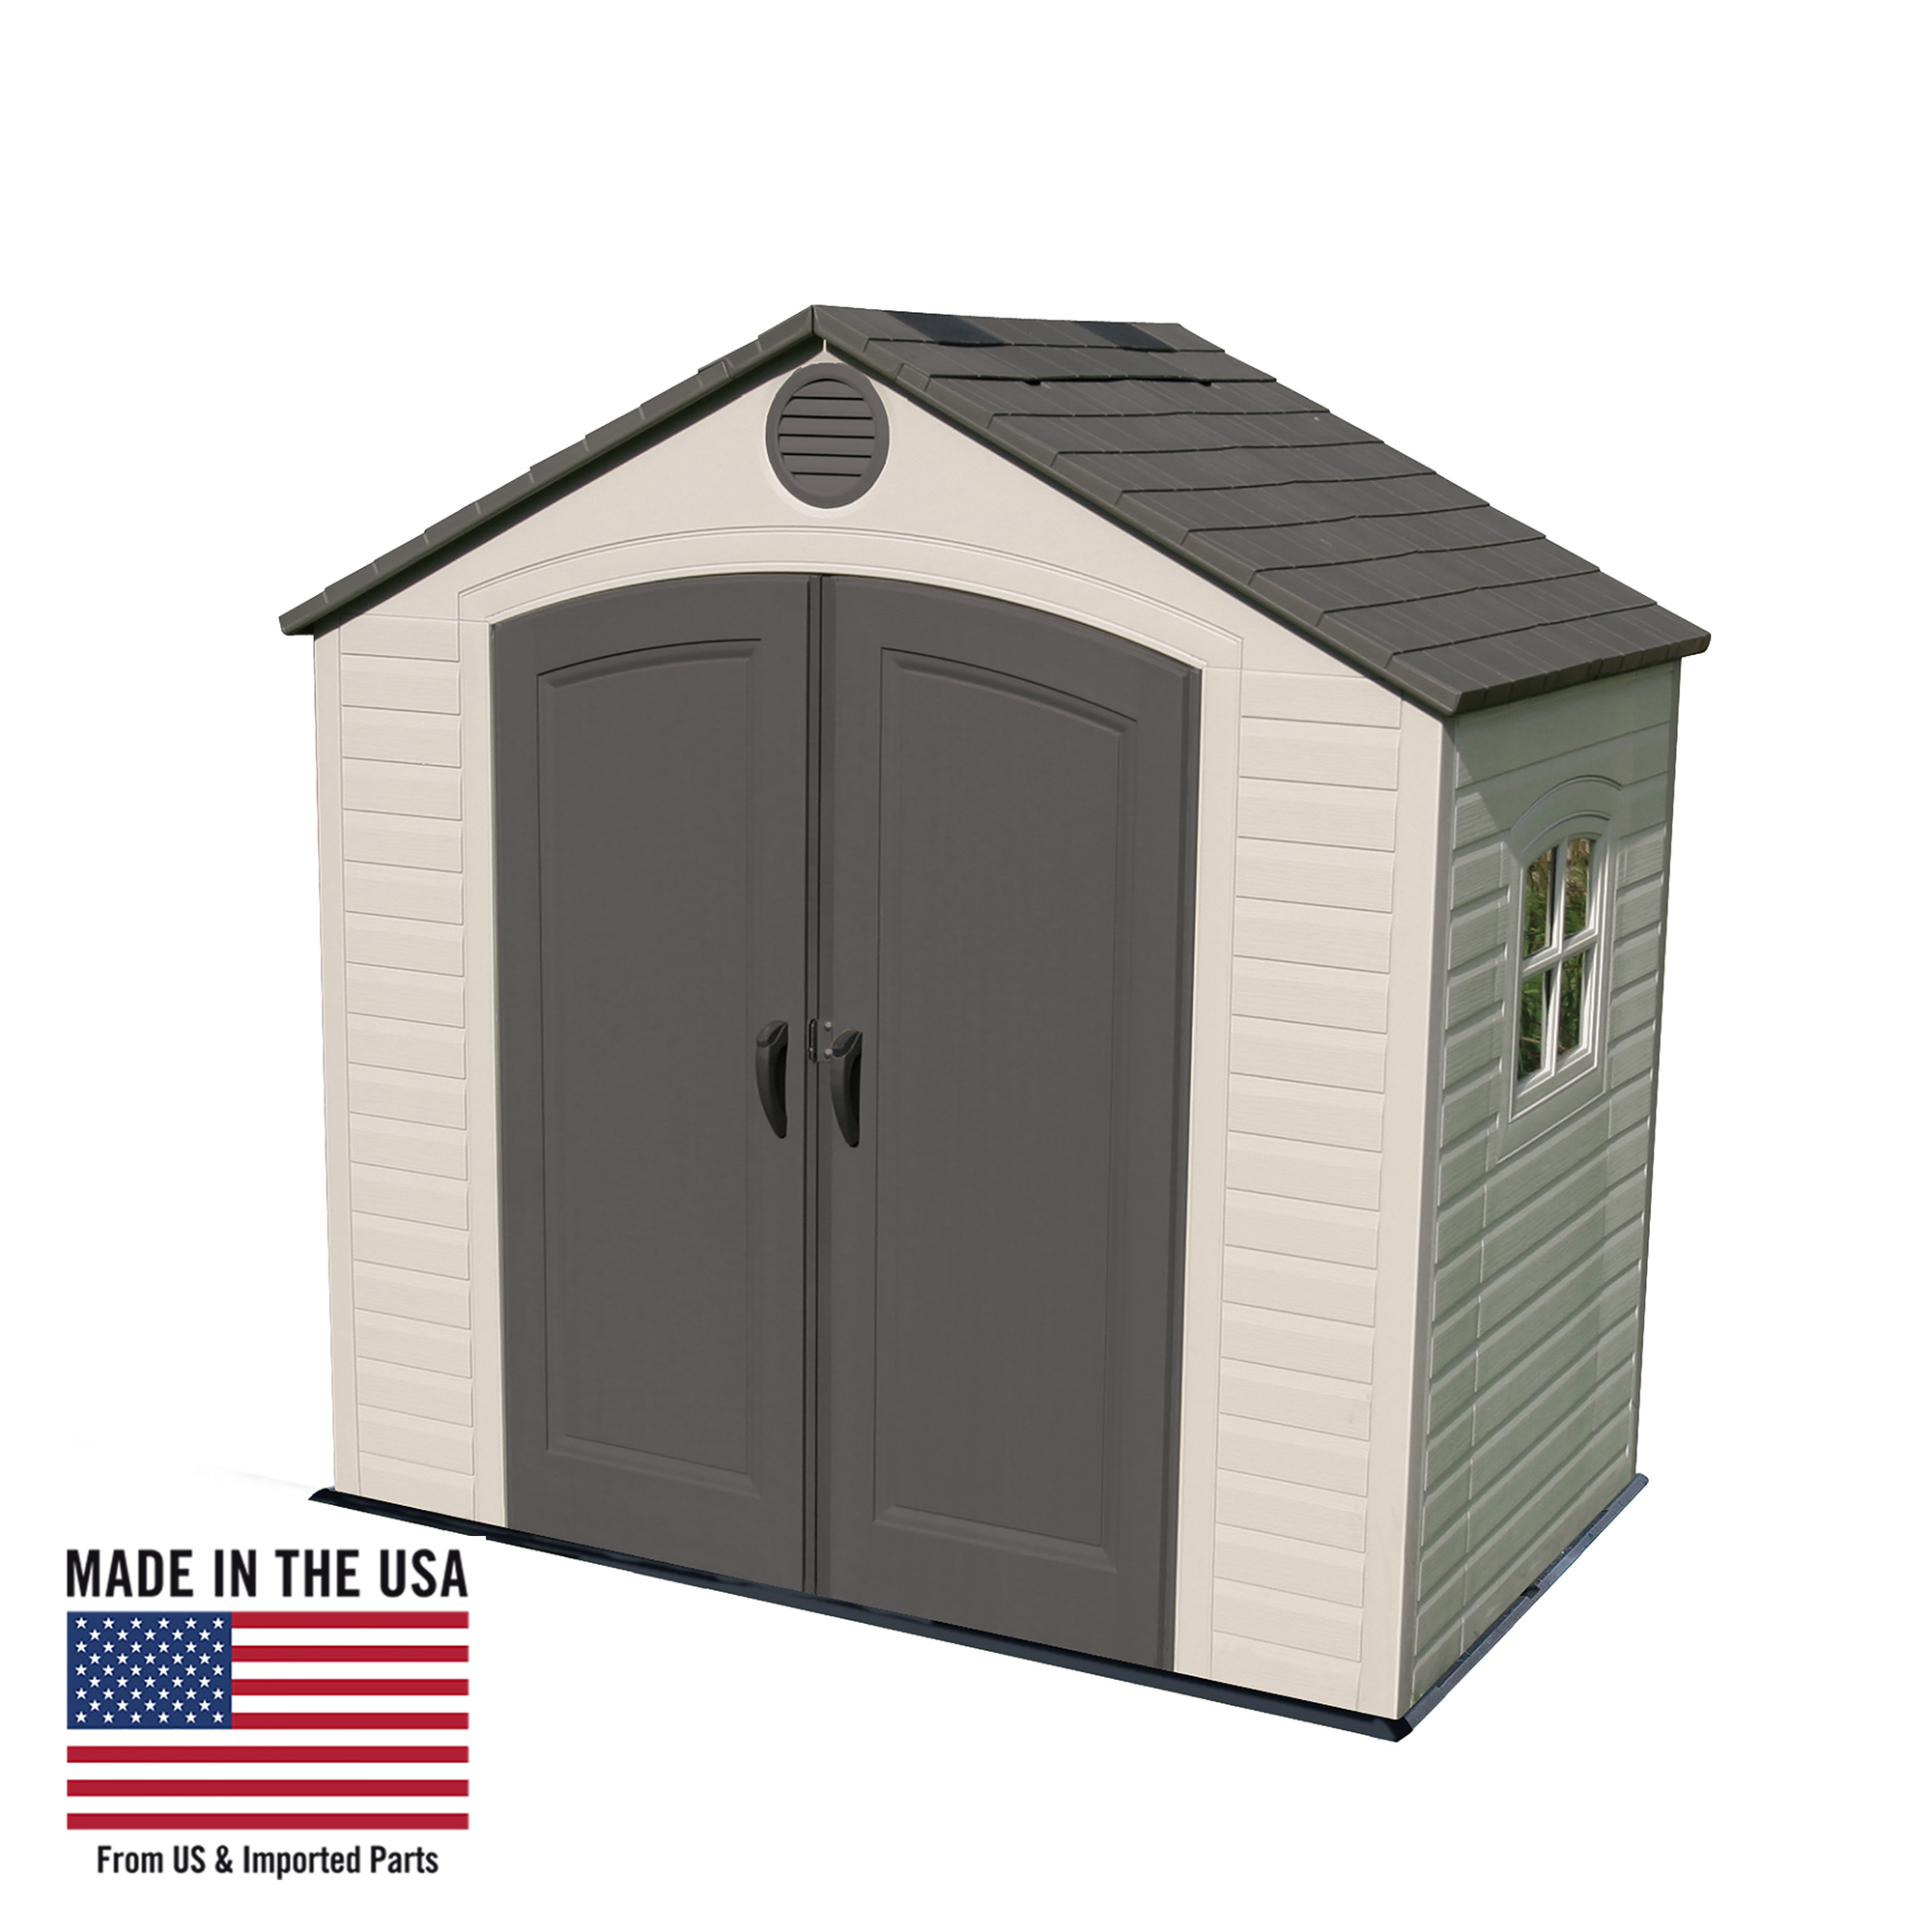 Lifetime 8 Ft. x 5 Ft. Outdoor Storage Shed, Desert Sand